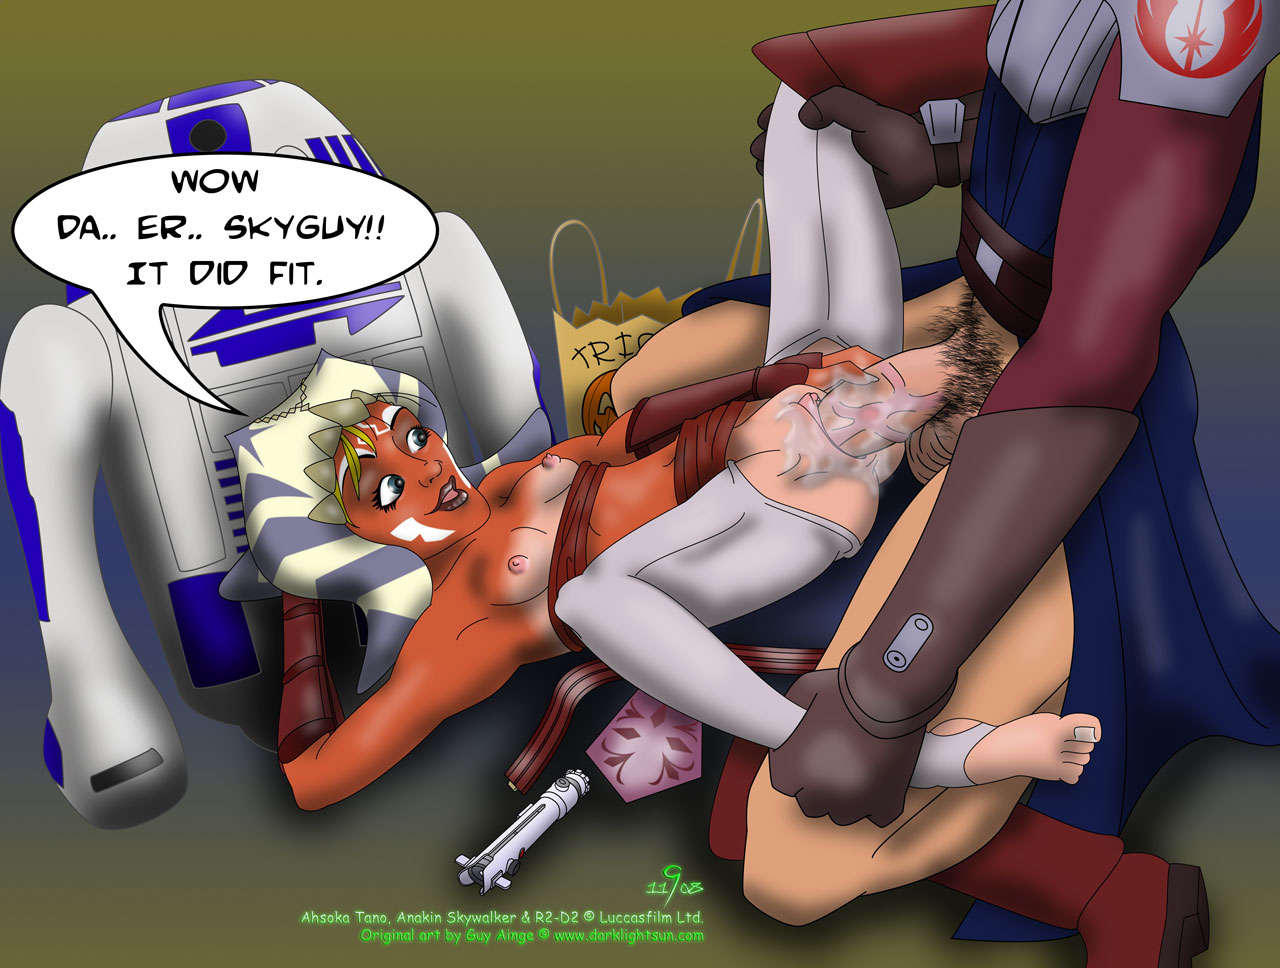 Star wars ahsoka sex videos fucked pictures